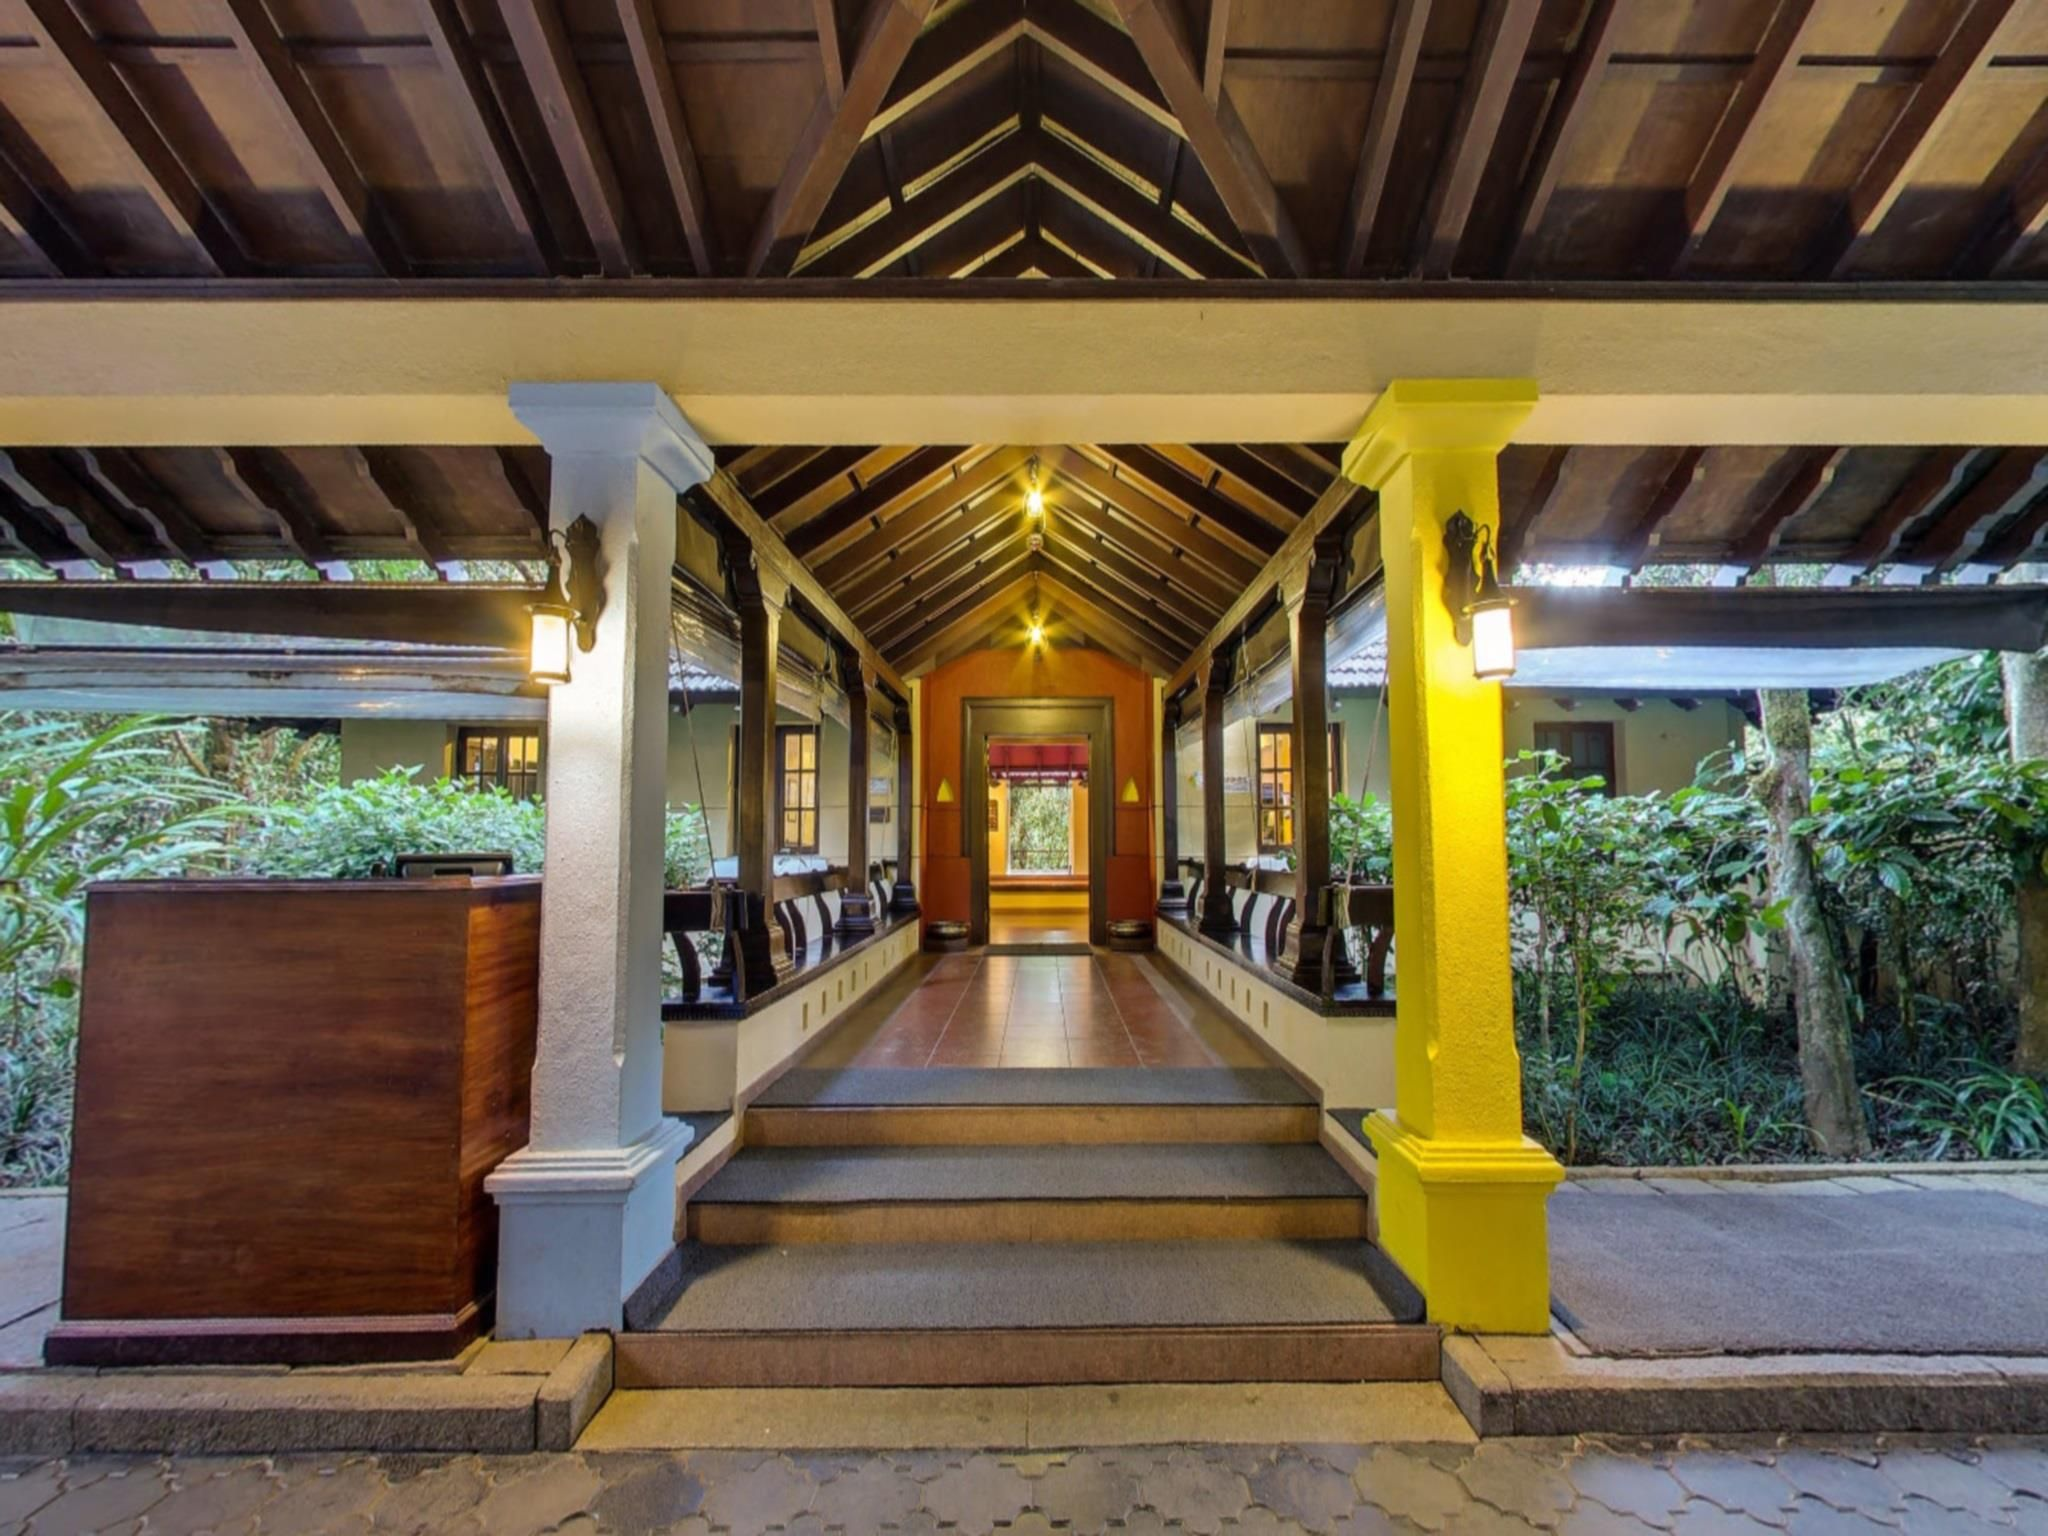 Coorg Club Mahindra Madikeri Coorg India Asia The 4 Star Club Mahindra Madikeri Coorg Offers Comfort And Convenience Wheth Hotel Hotel Offers Outdoor Pool